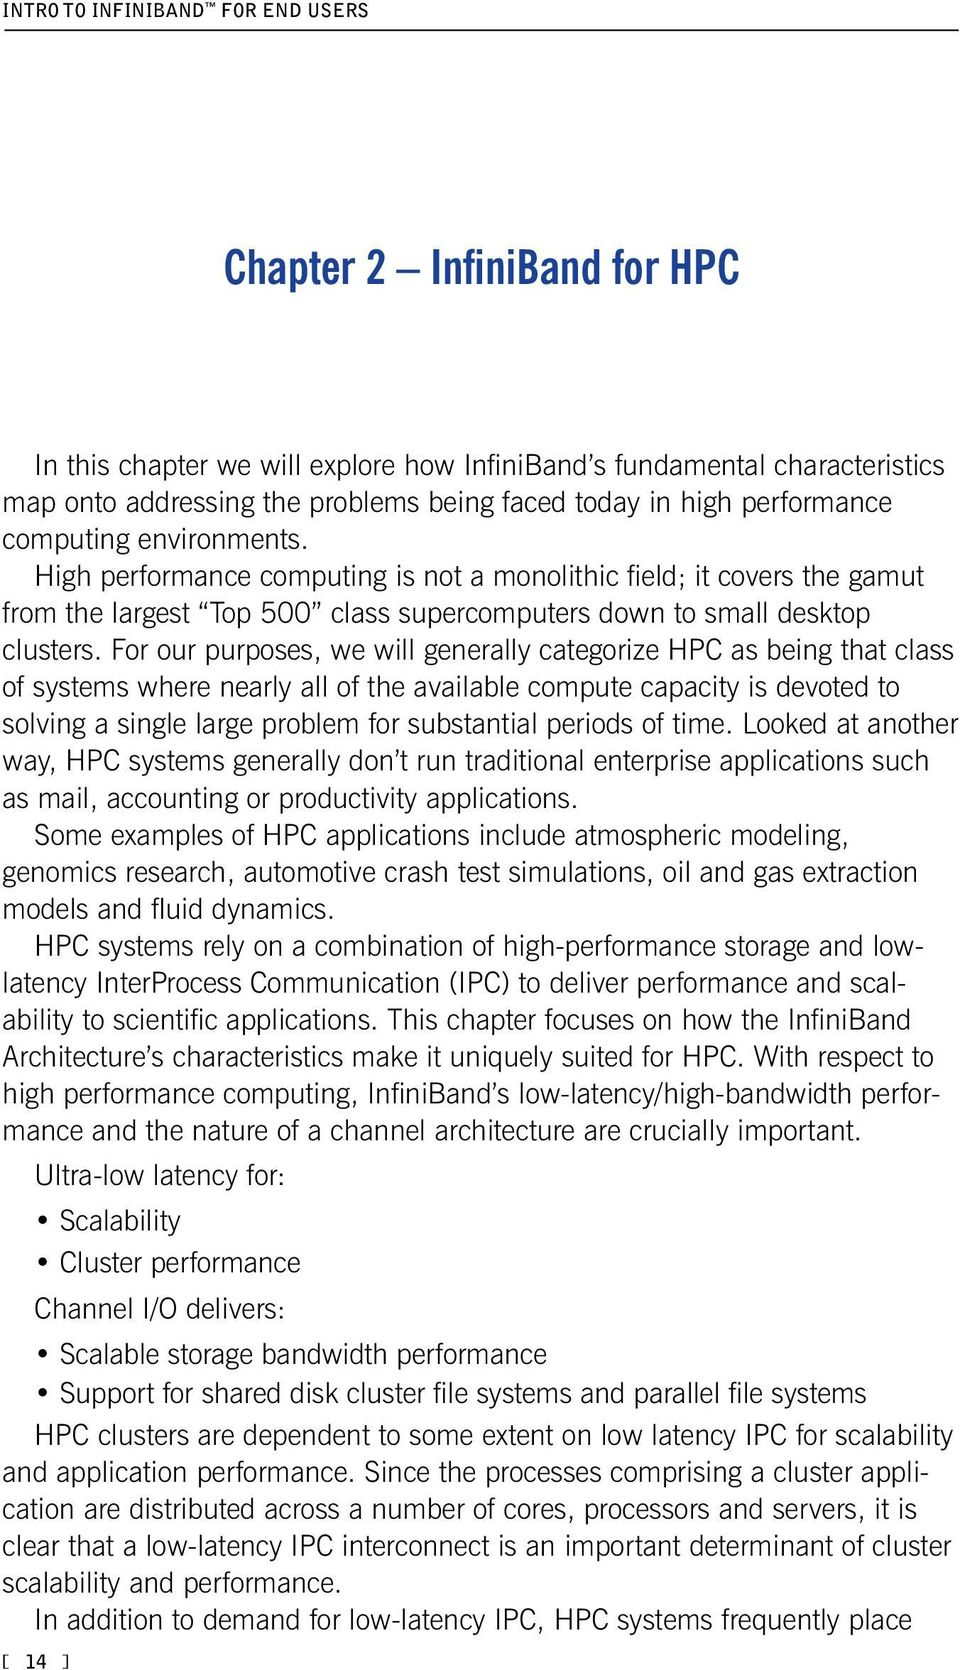 For our purposes, we will generally categorize HPC as being that class of systems where nearly all of the available compute capacity is devoted to solving a single large problem for substantial